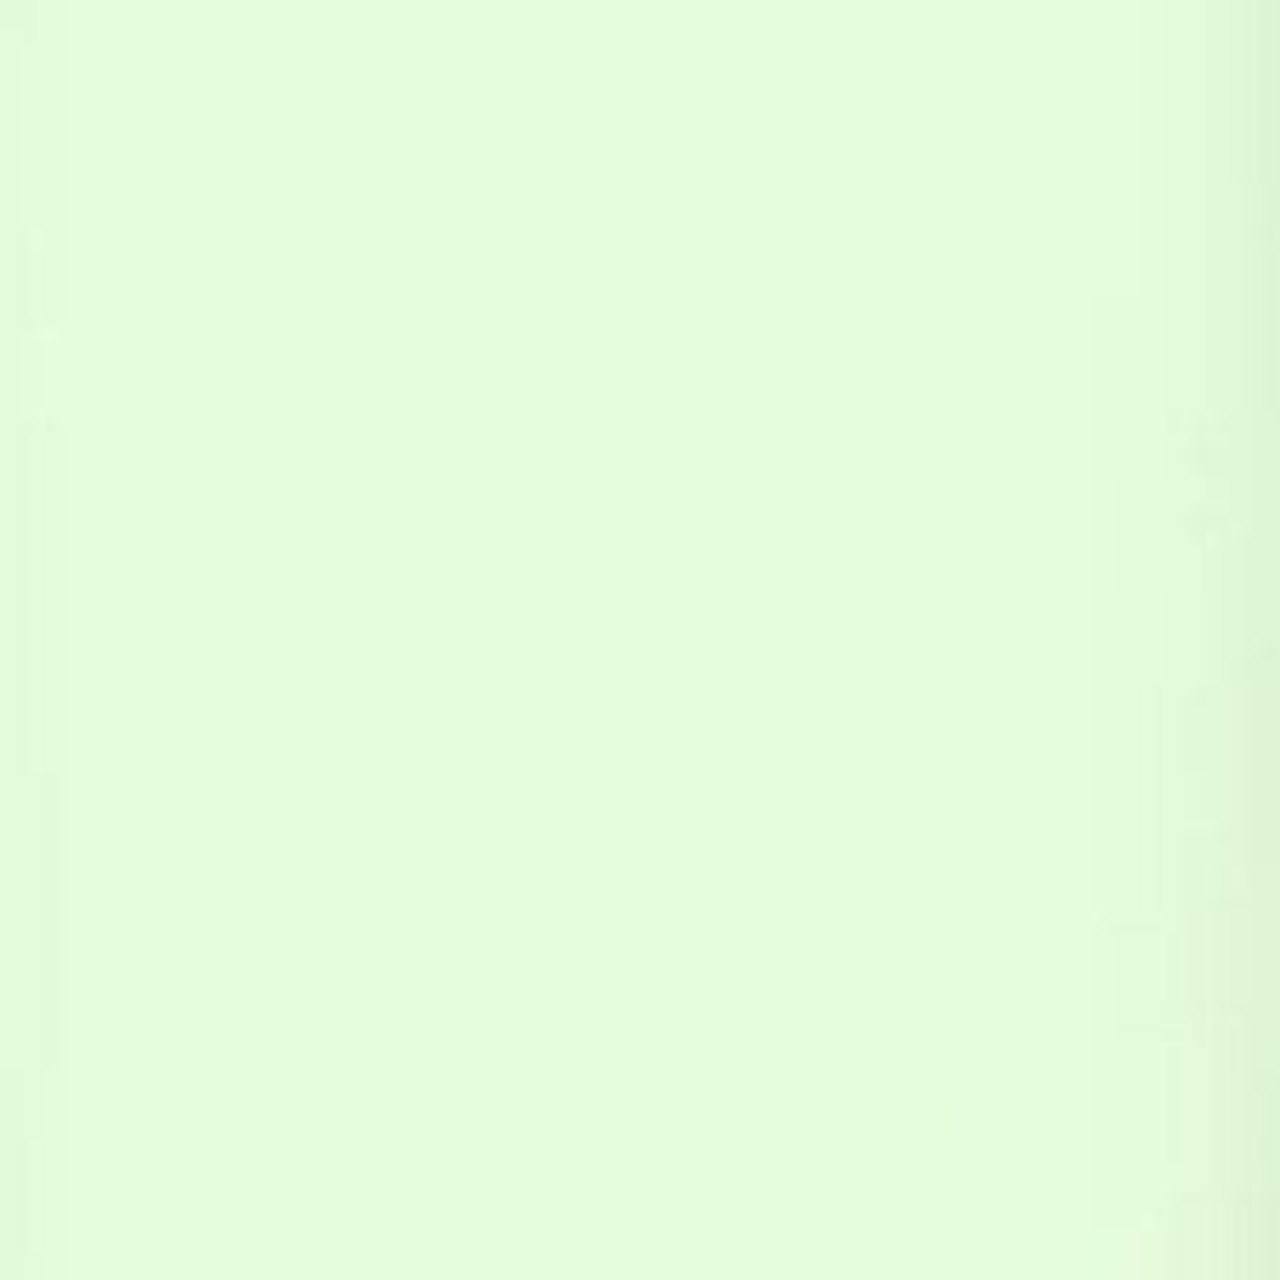 Lee Gels Sheet #213 White Flame Green